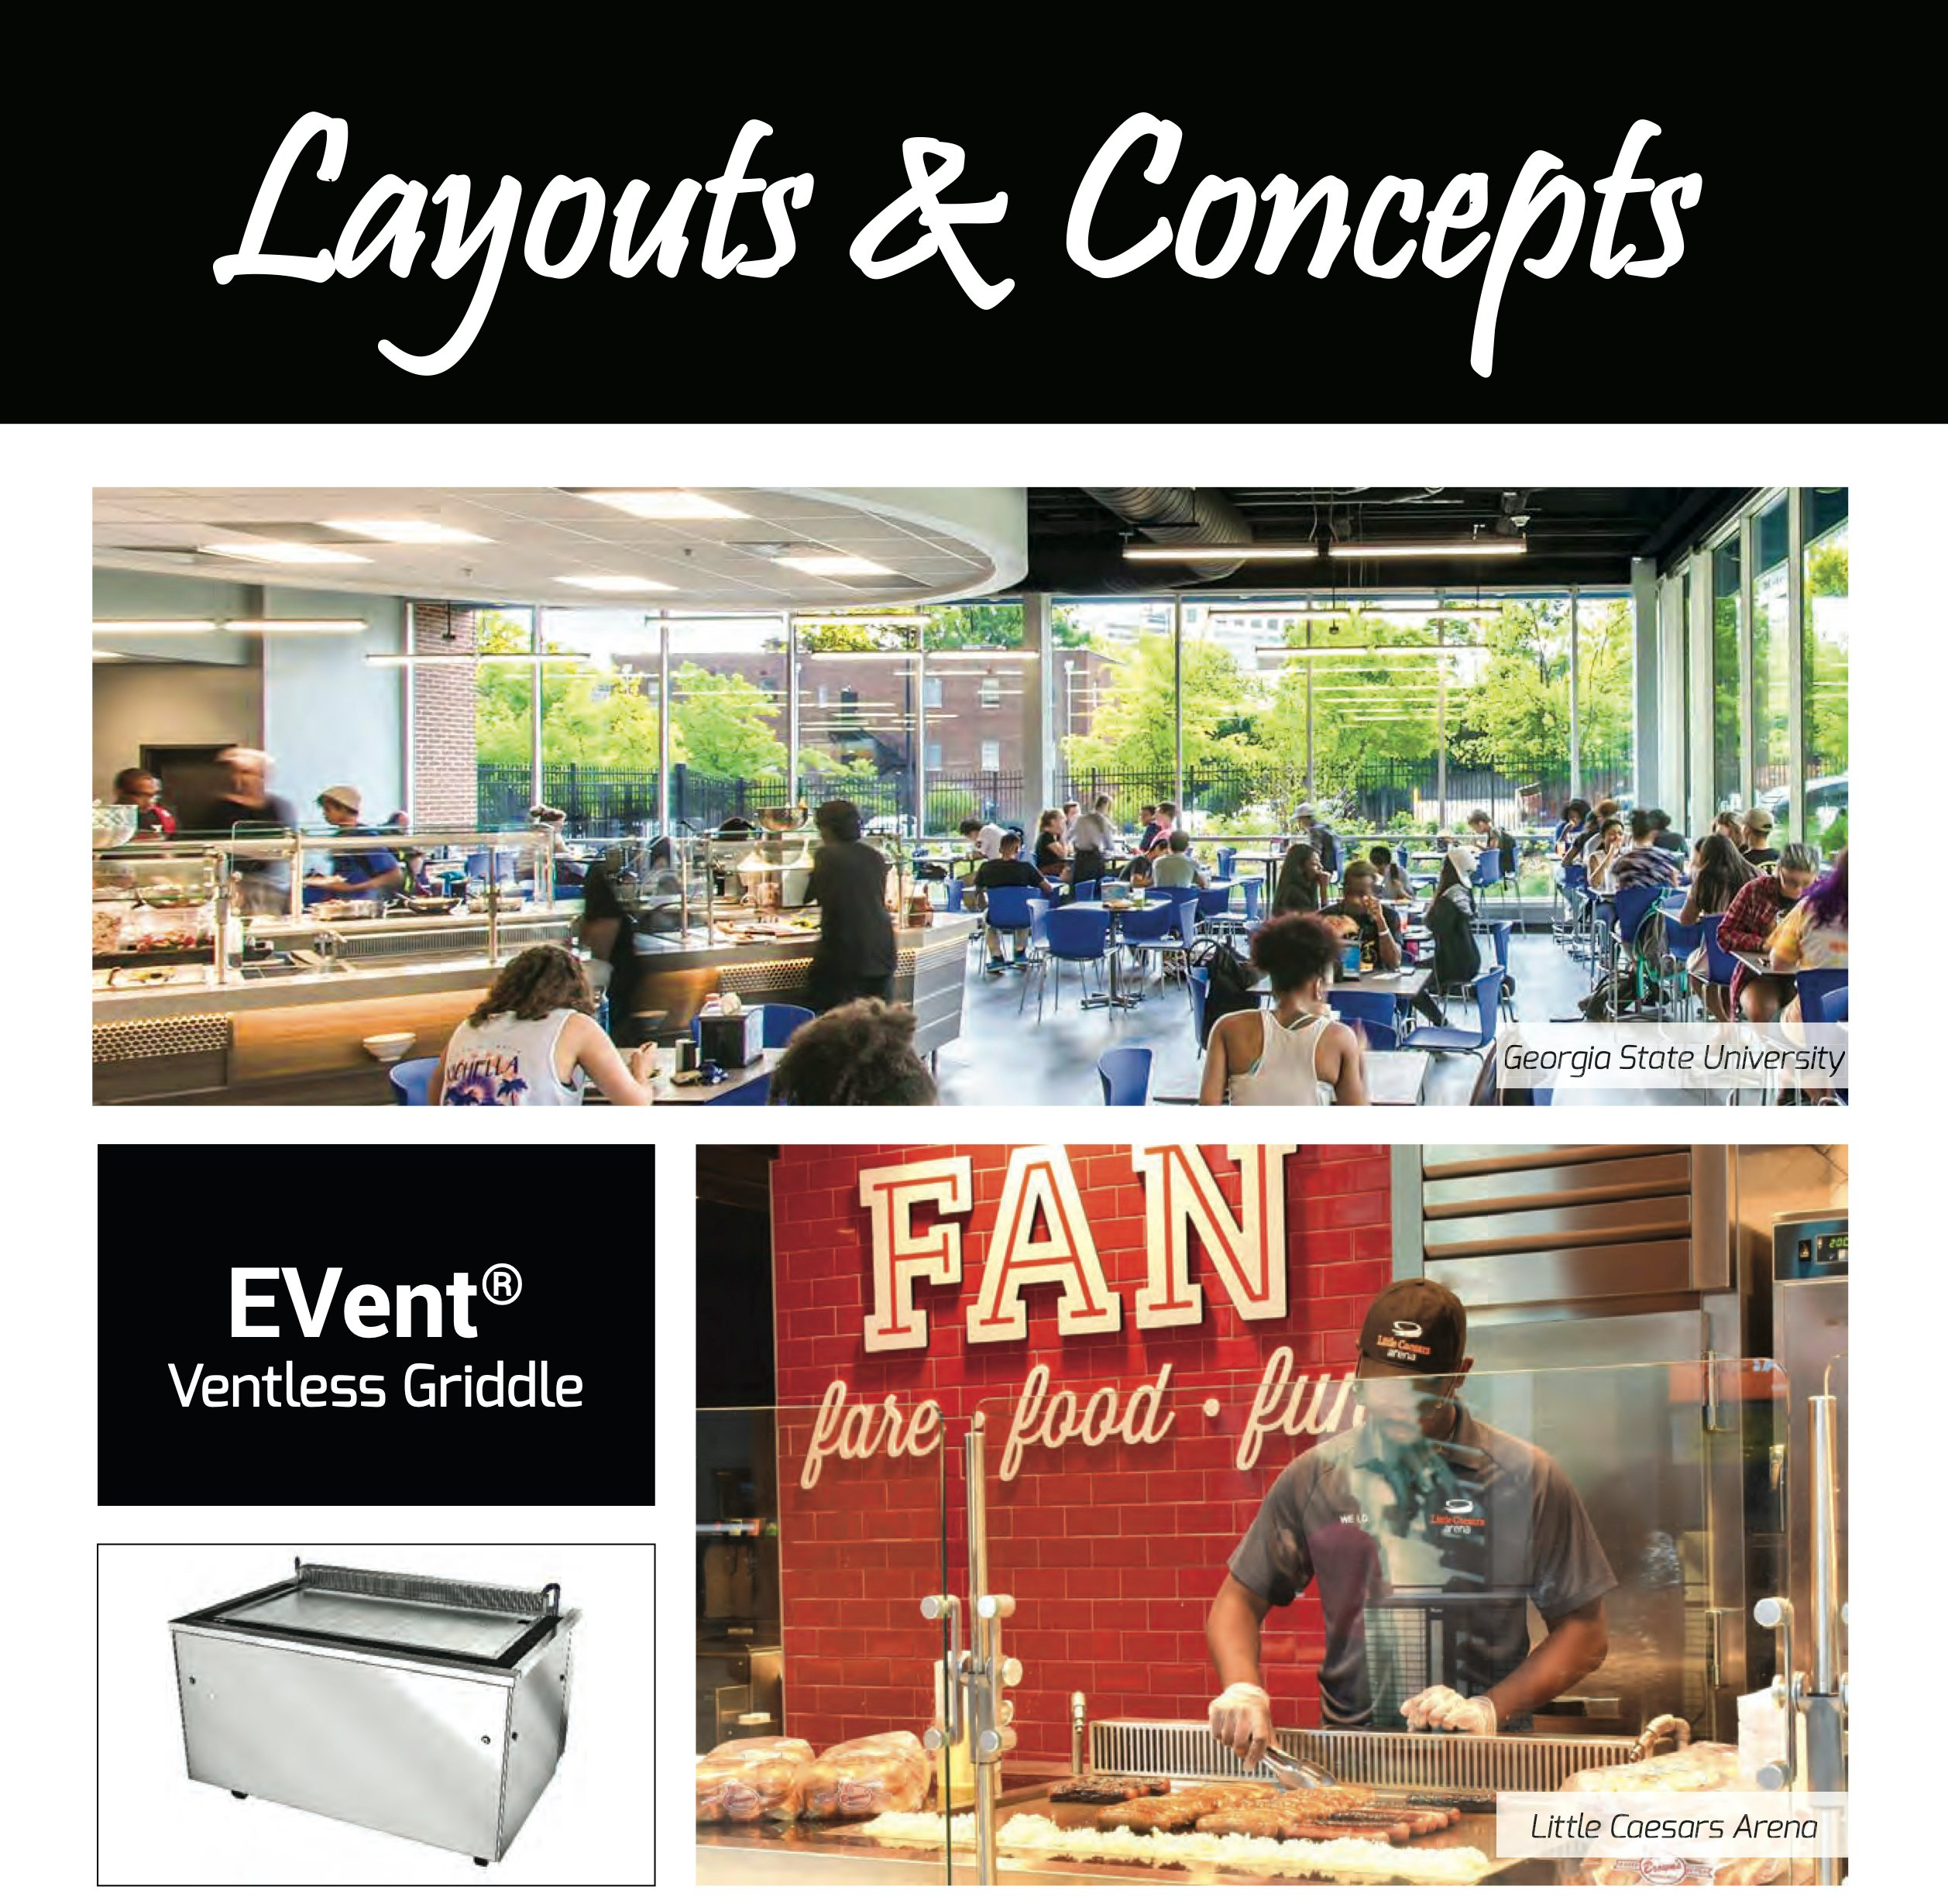 Evo-EVent-Layout-and-Concept-Foodservice-Portfoliosm